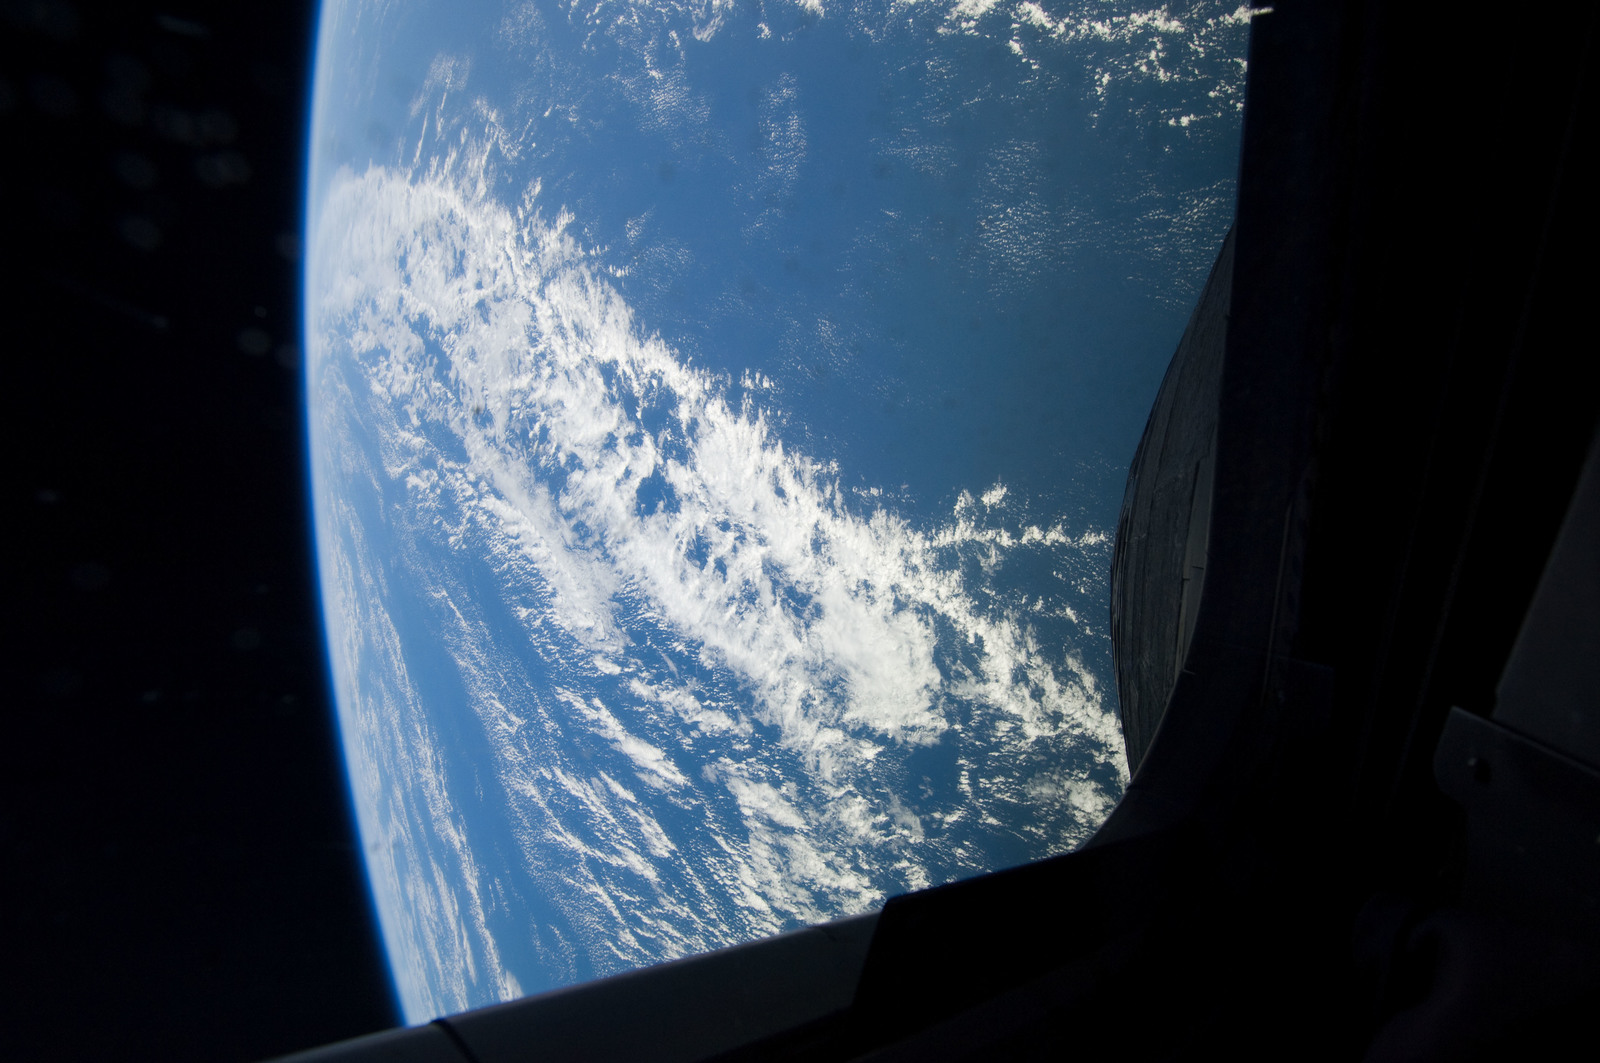 s133E006944 - STS-133 - Earth Observation taken by the STS-133 crew